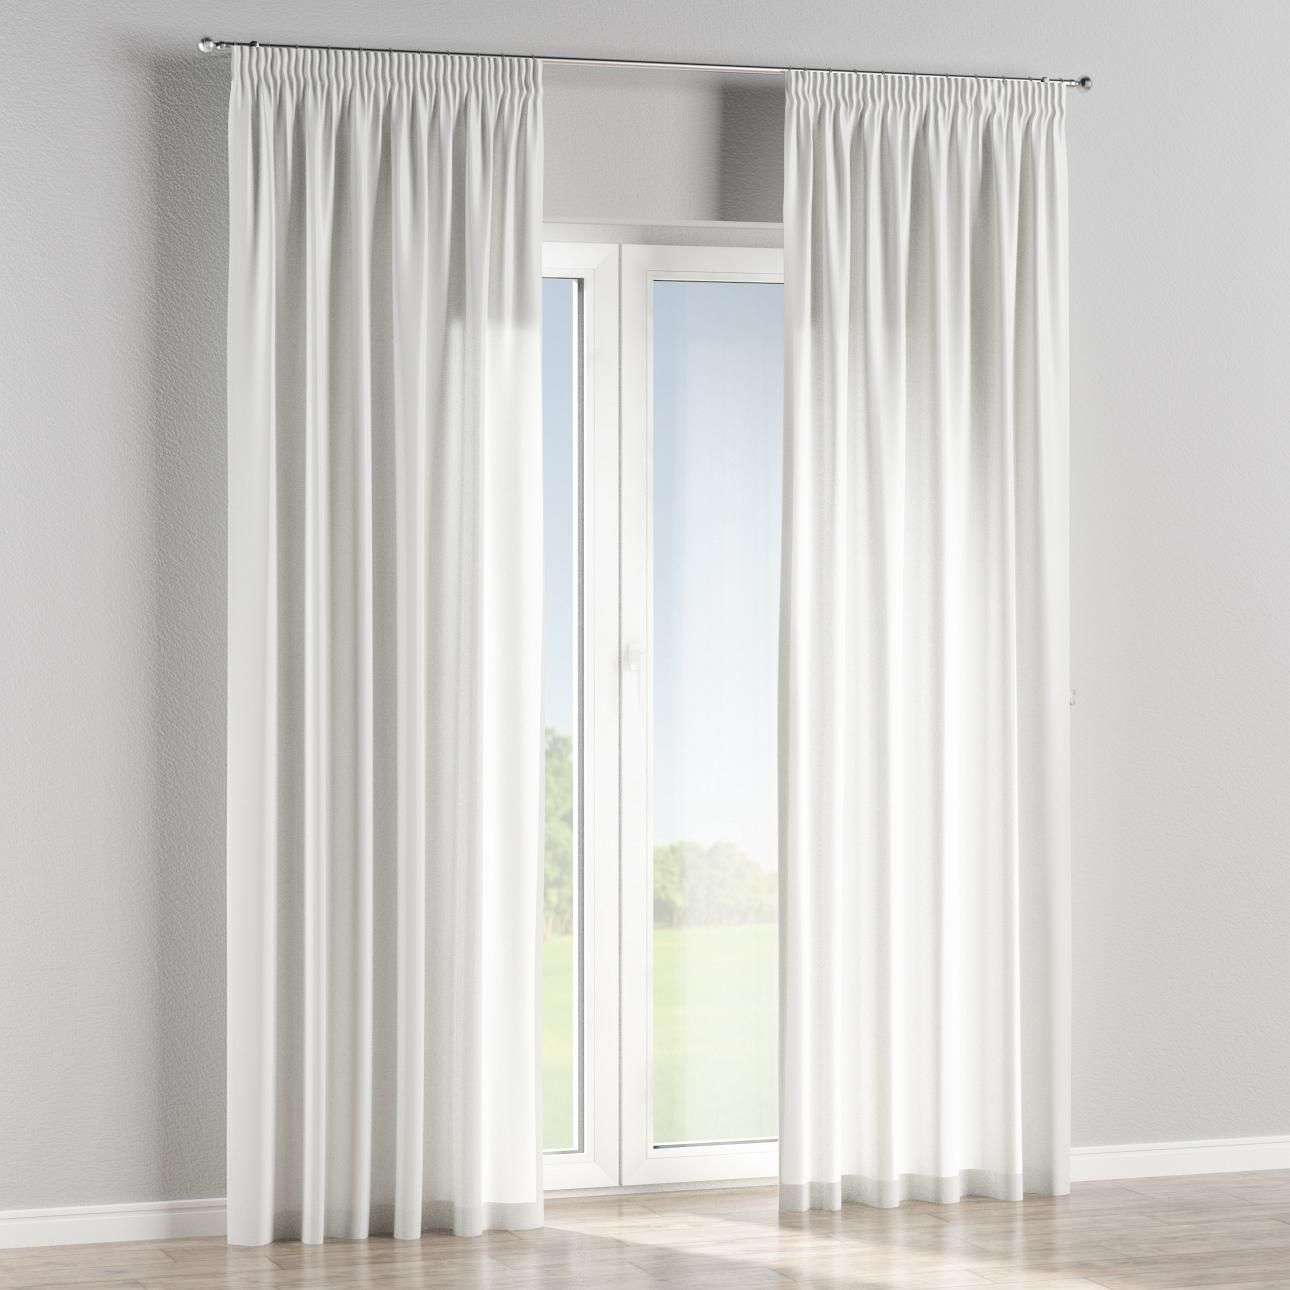 Pencil pleat curtains in collection Taffeta , fabric: 103-83